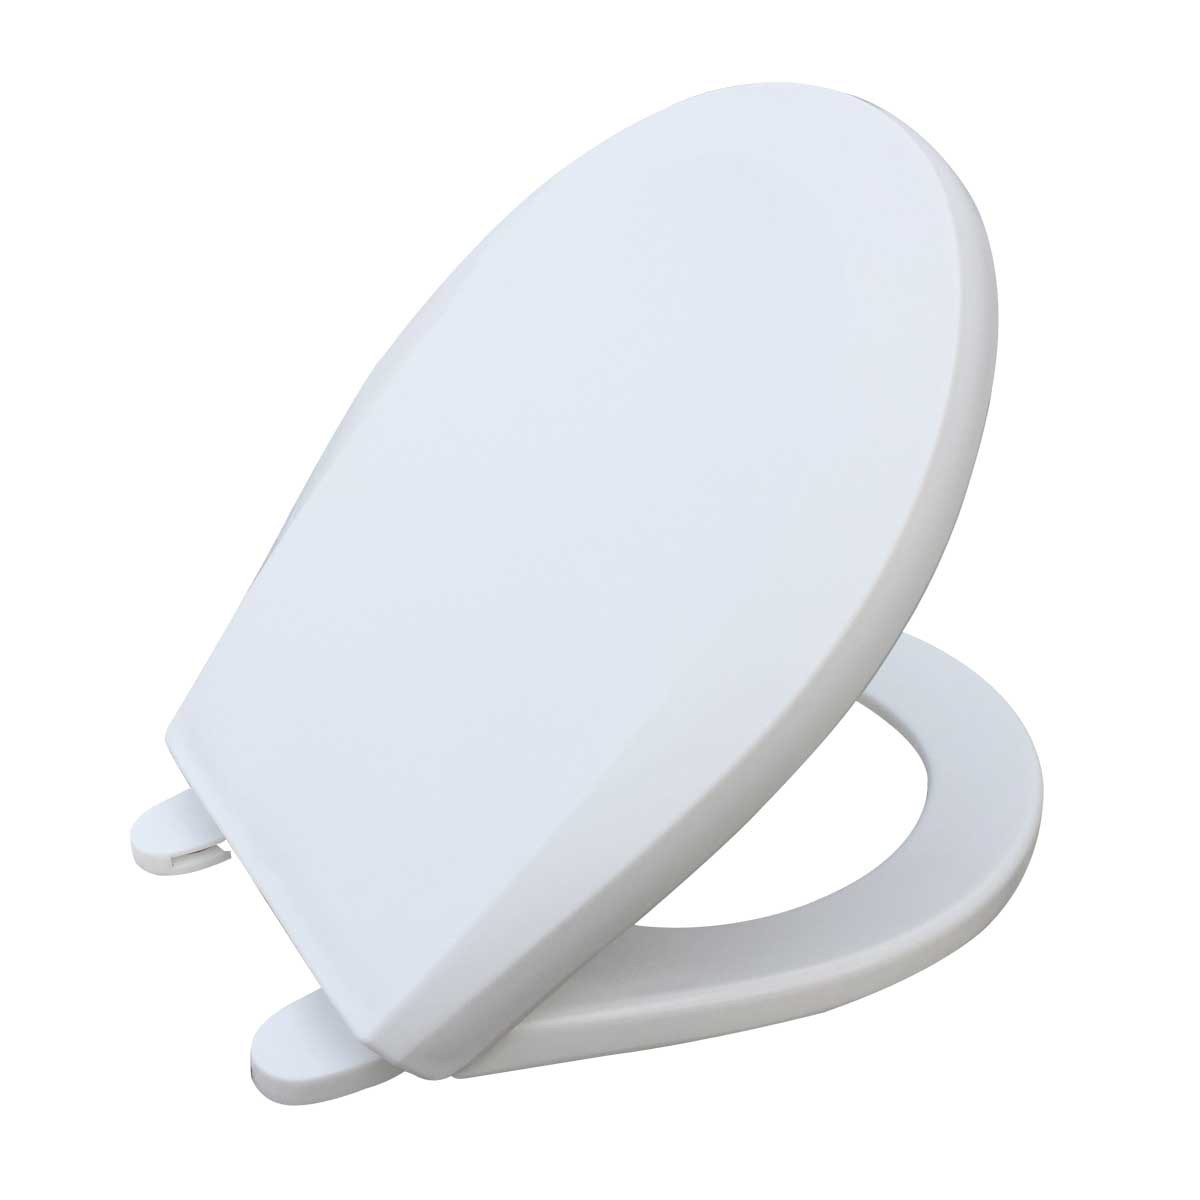 Astonishing Child Sized Toilet Seat Replacement White Molded Plastic Machost Co Dining Chair Design Ideas Machostcouk